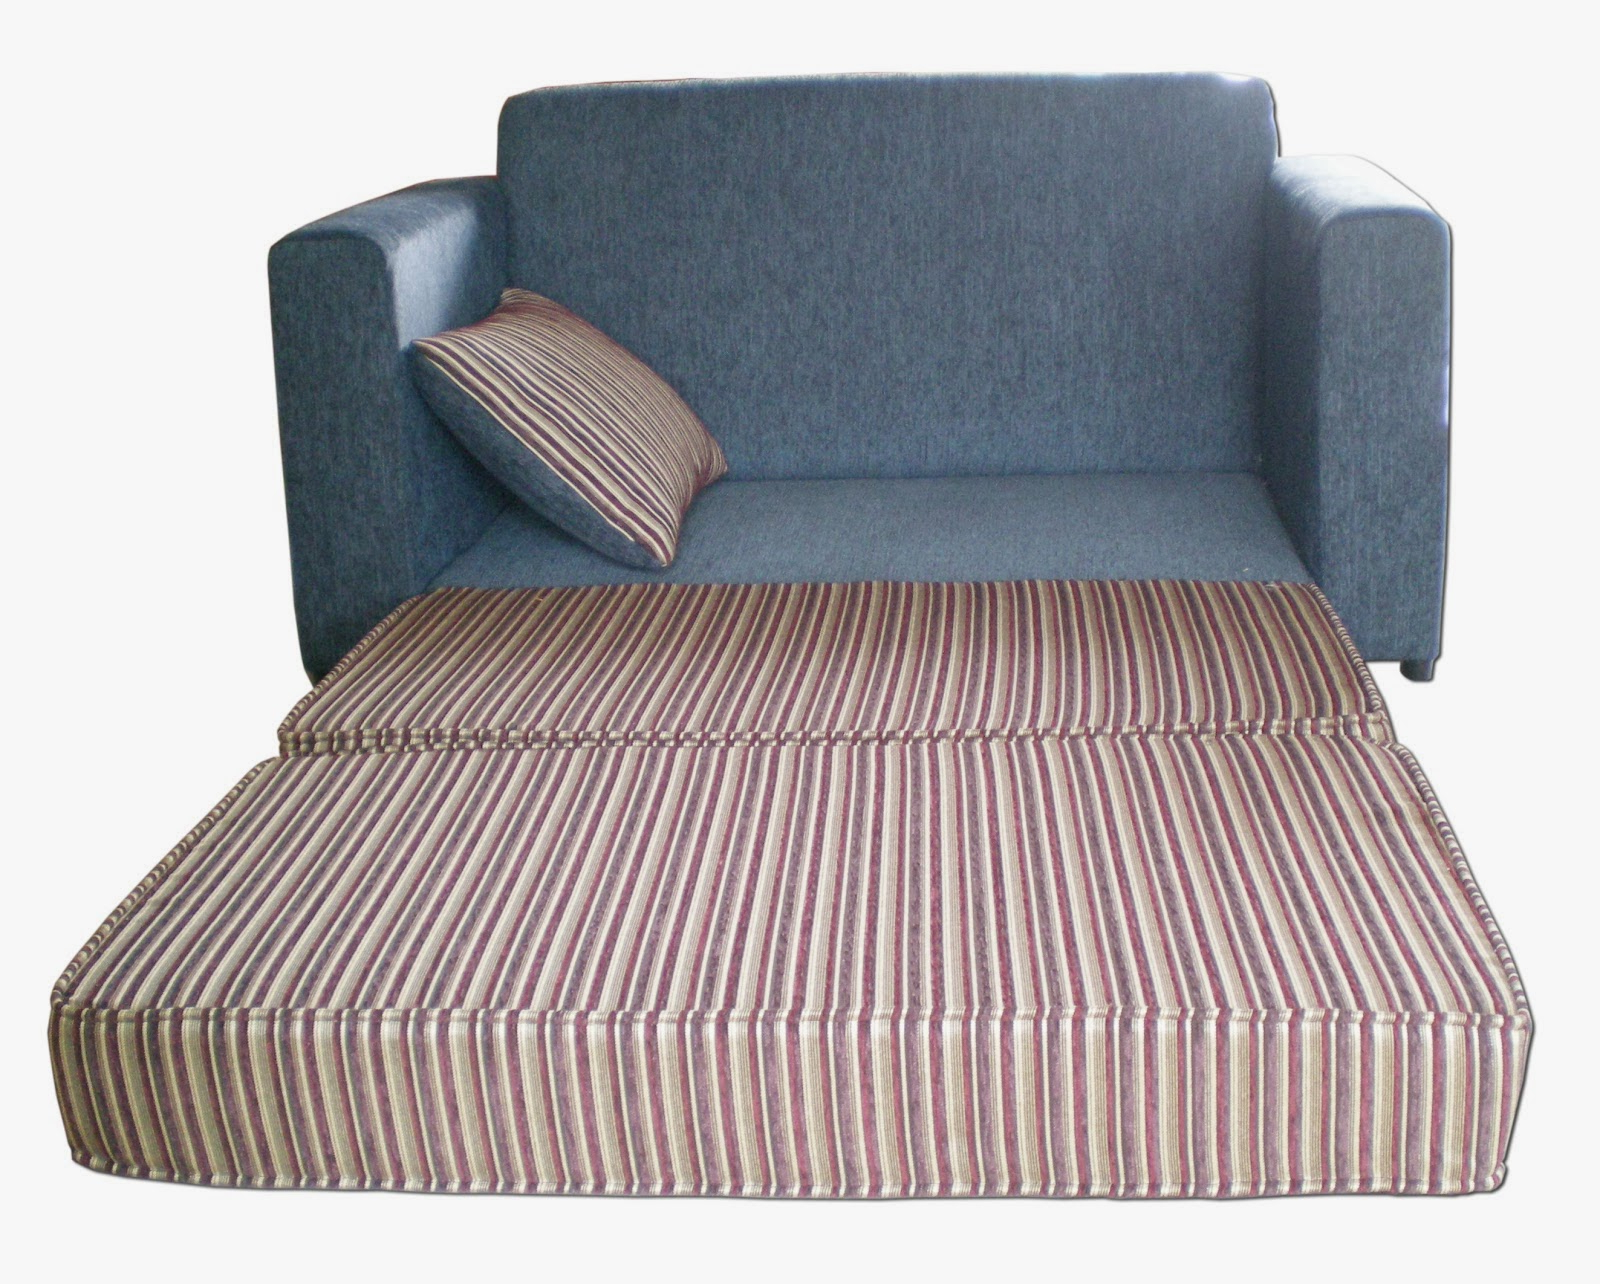 Single Sofa Bed Chairs Intended For 2018 Sleeper Sofa Single Couch Bed W Pull Out Chairs For Fold Mat Bed (View 20 of 20)